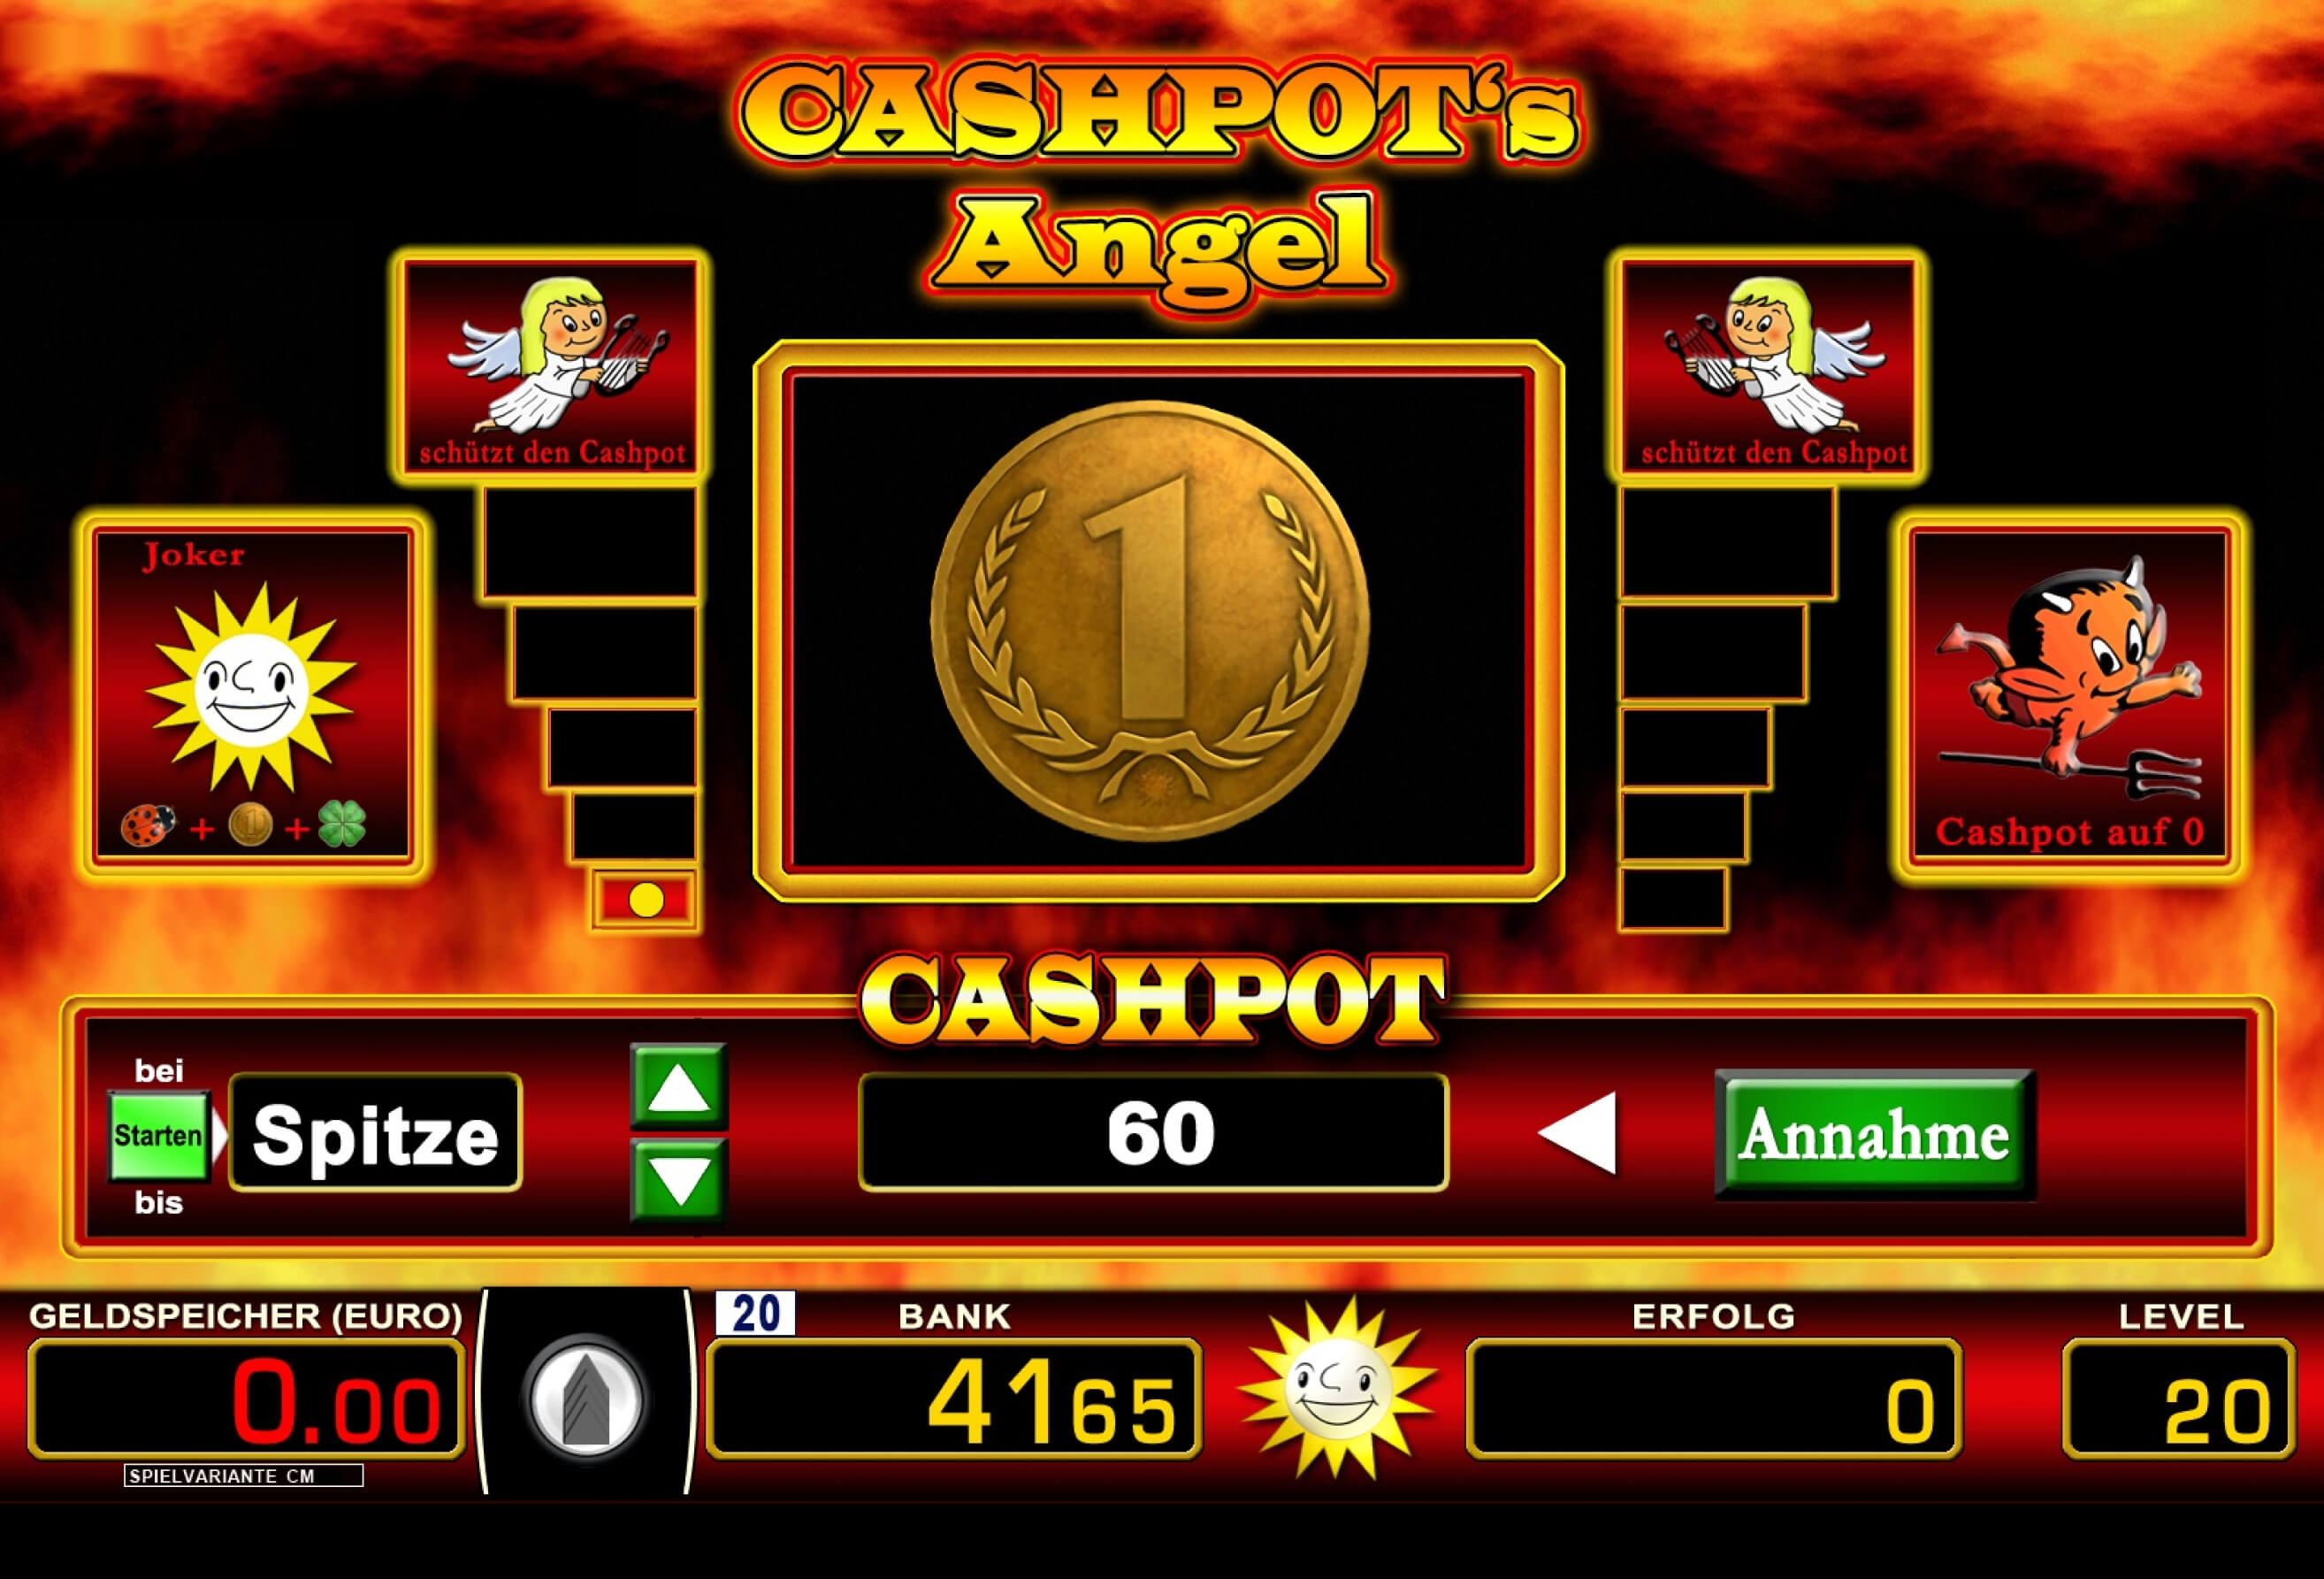 Cashpots Angel